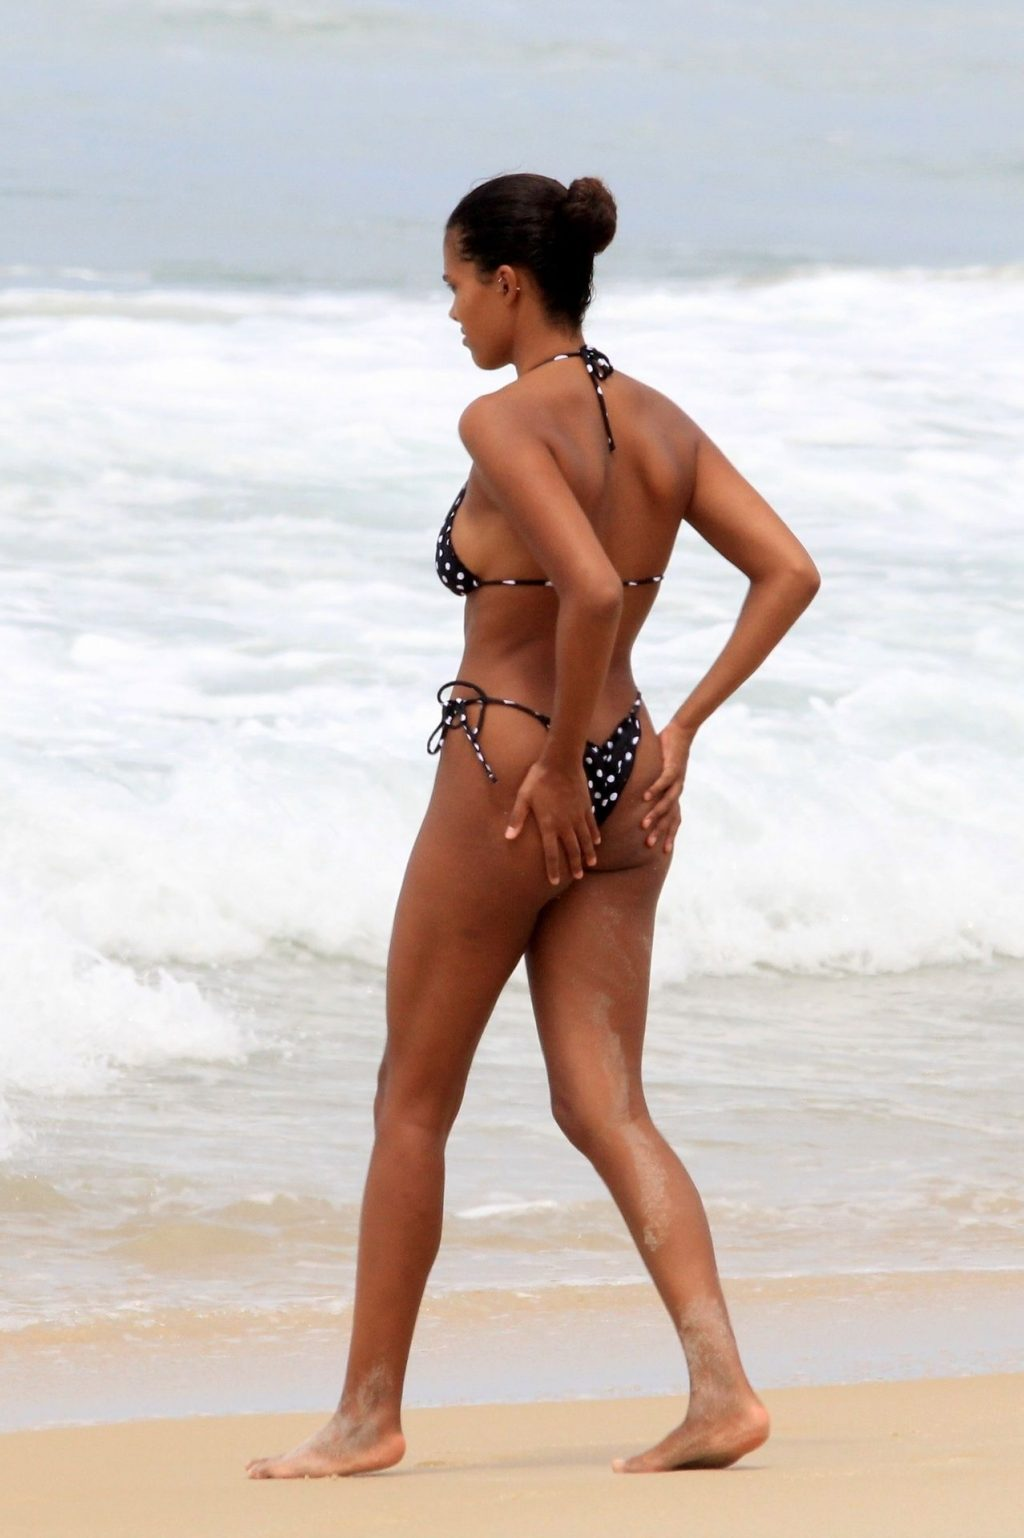 Tina Kunakey Nearly Nip Slip While Frolicking on the Beach in Rio (73 Photos)